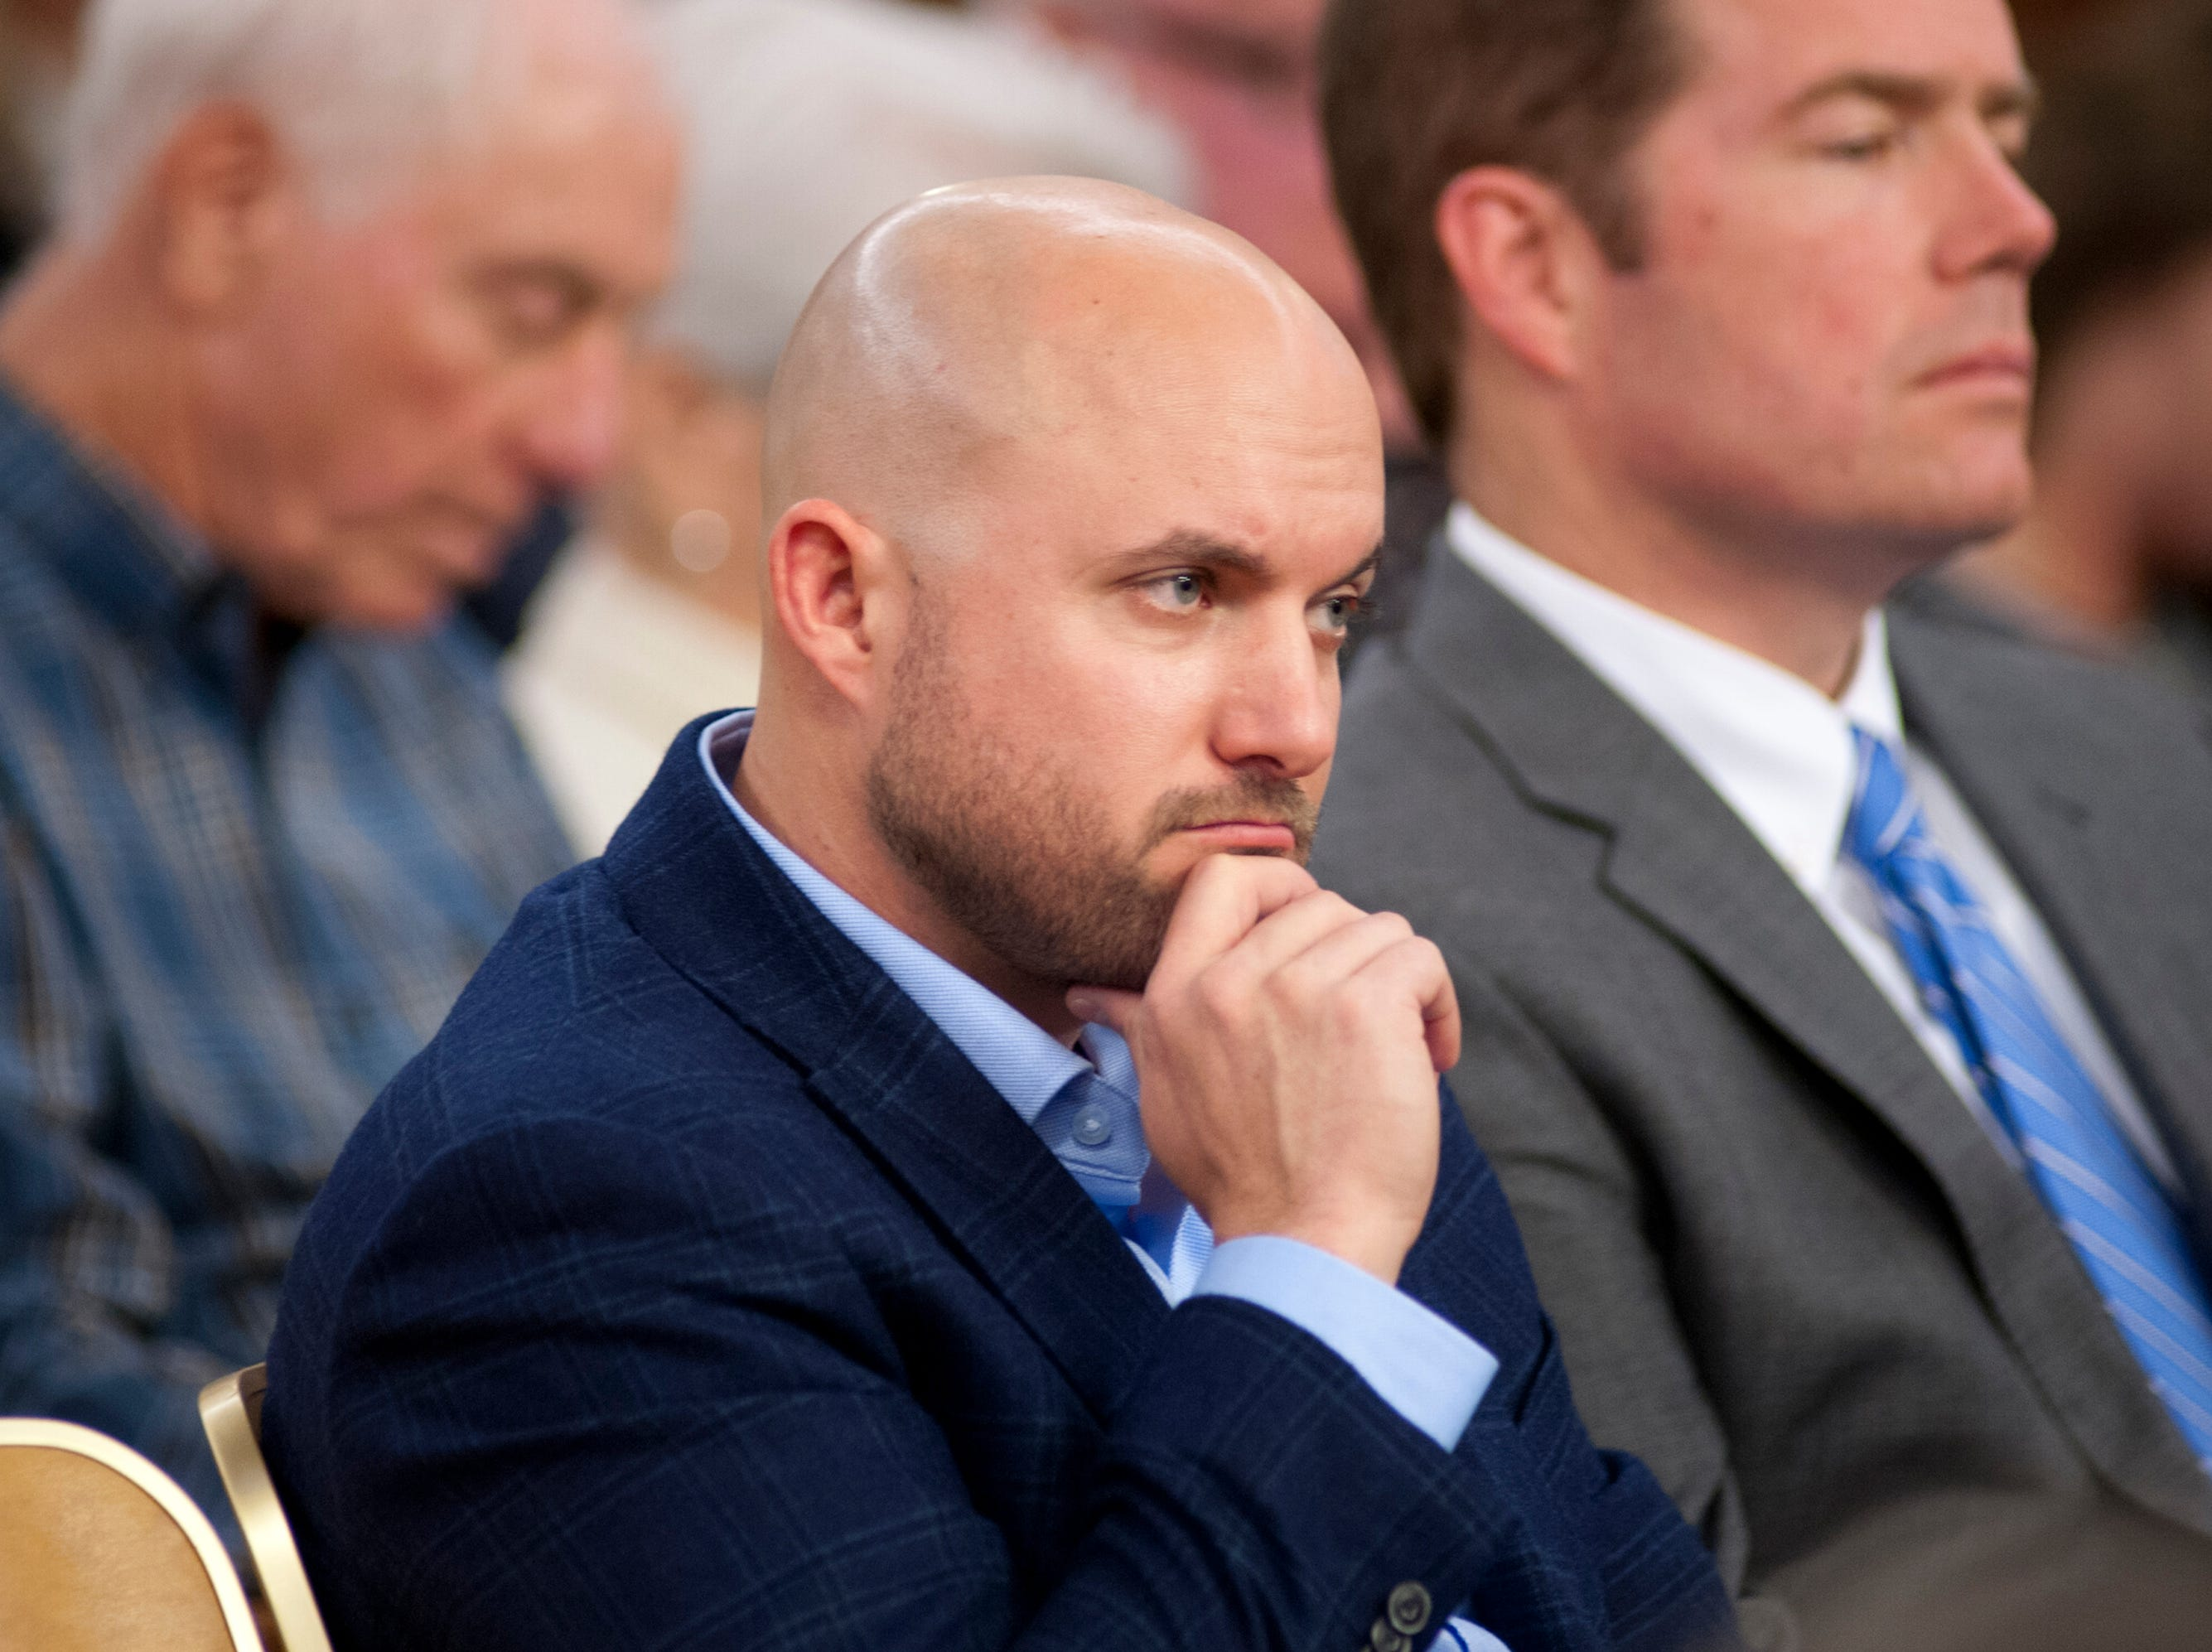 Tanner Micheli, director of real estate development at Topgolf, listens as the Louisville Metro Council debates approving planning commission recommendations on his company at the council's meeting on Nov. 29, 2018.